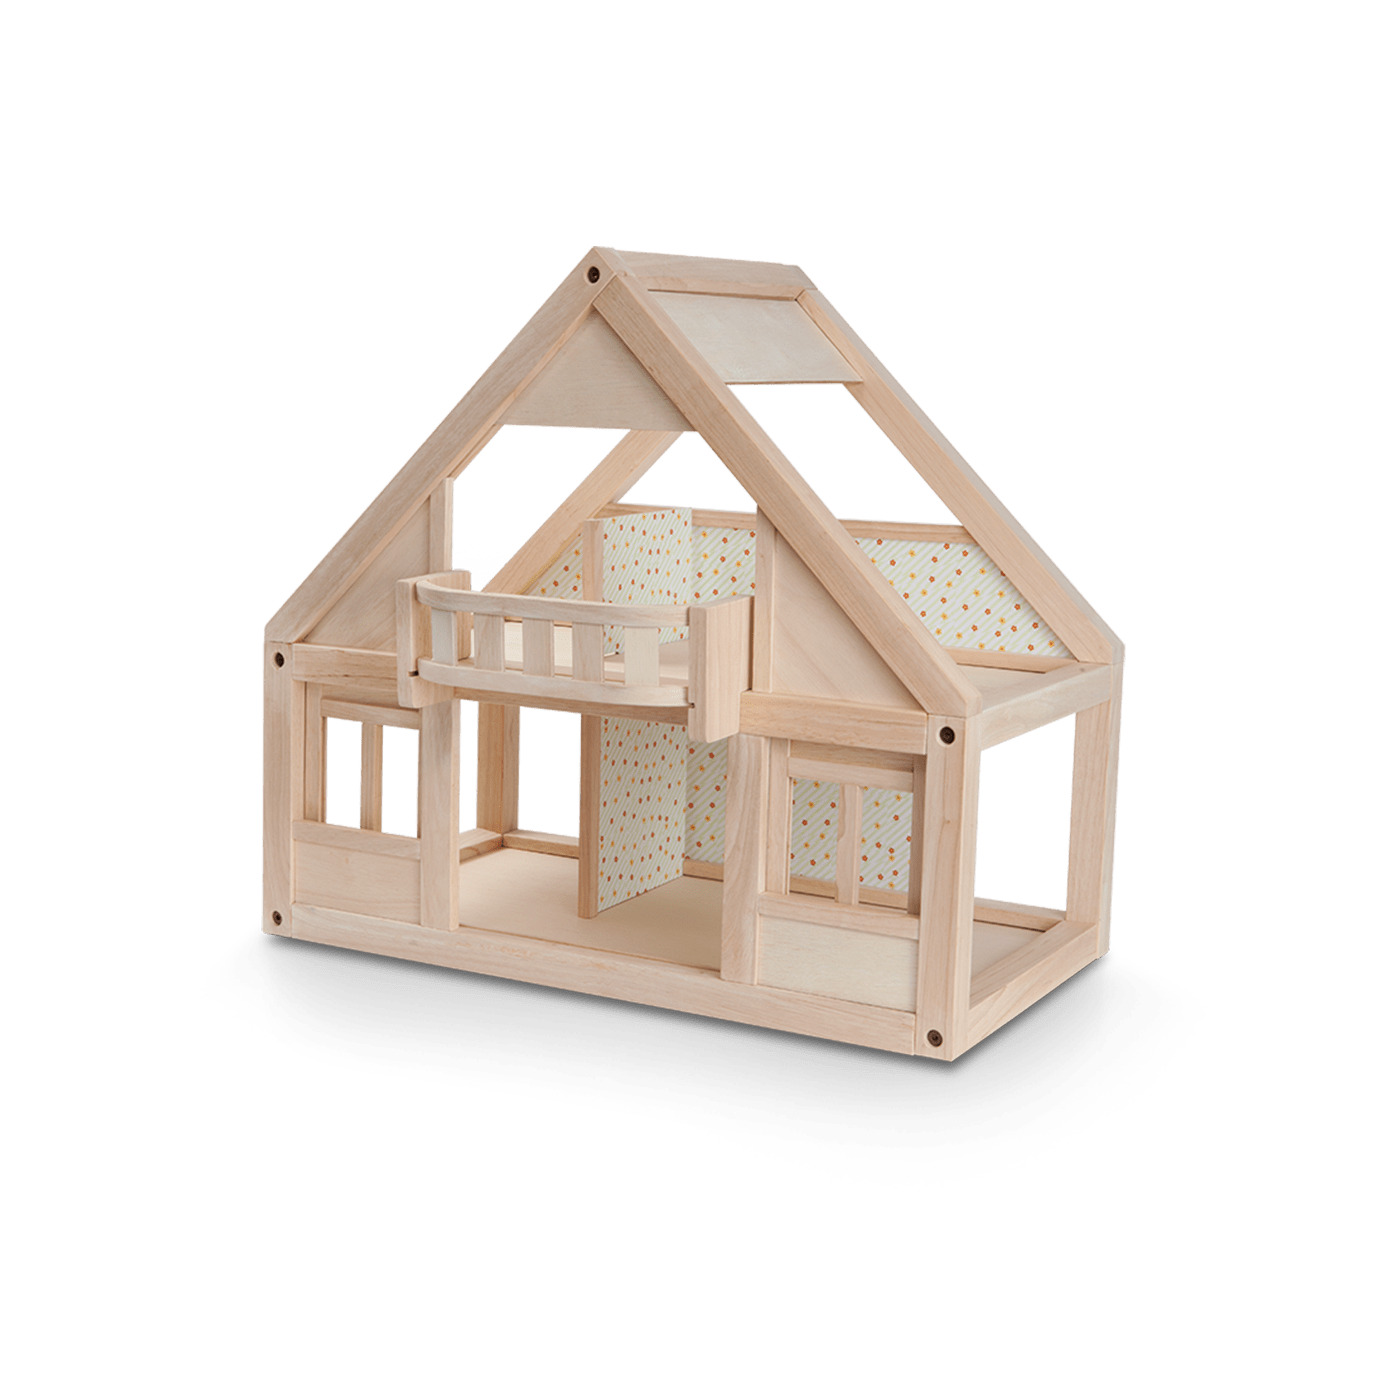 7110_PlanToys_MY_FIRST_DOLLHOUSE_Pretend_Play_Imagination_Social_Language_and_Communications_Creative_3yrs_Wooden_toys_Education_toys_Safety_Toys_Non-toxic_0.png